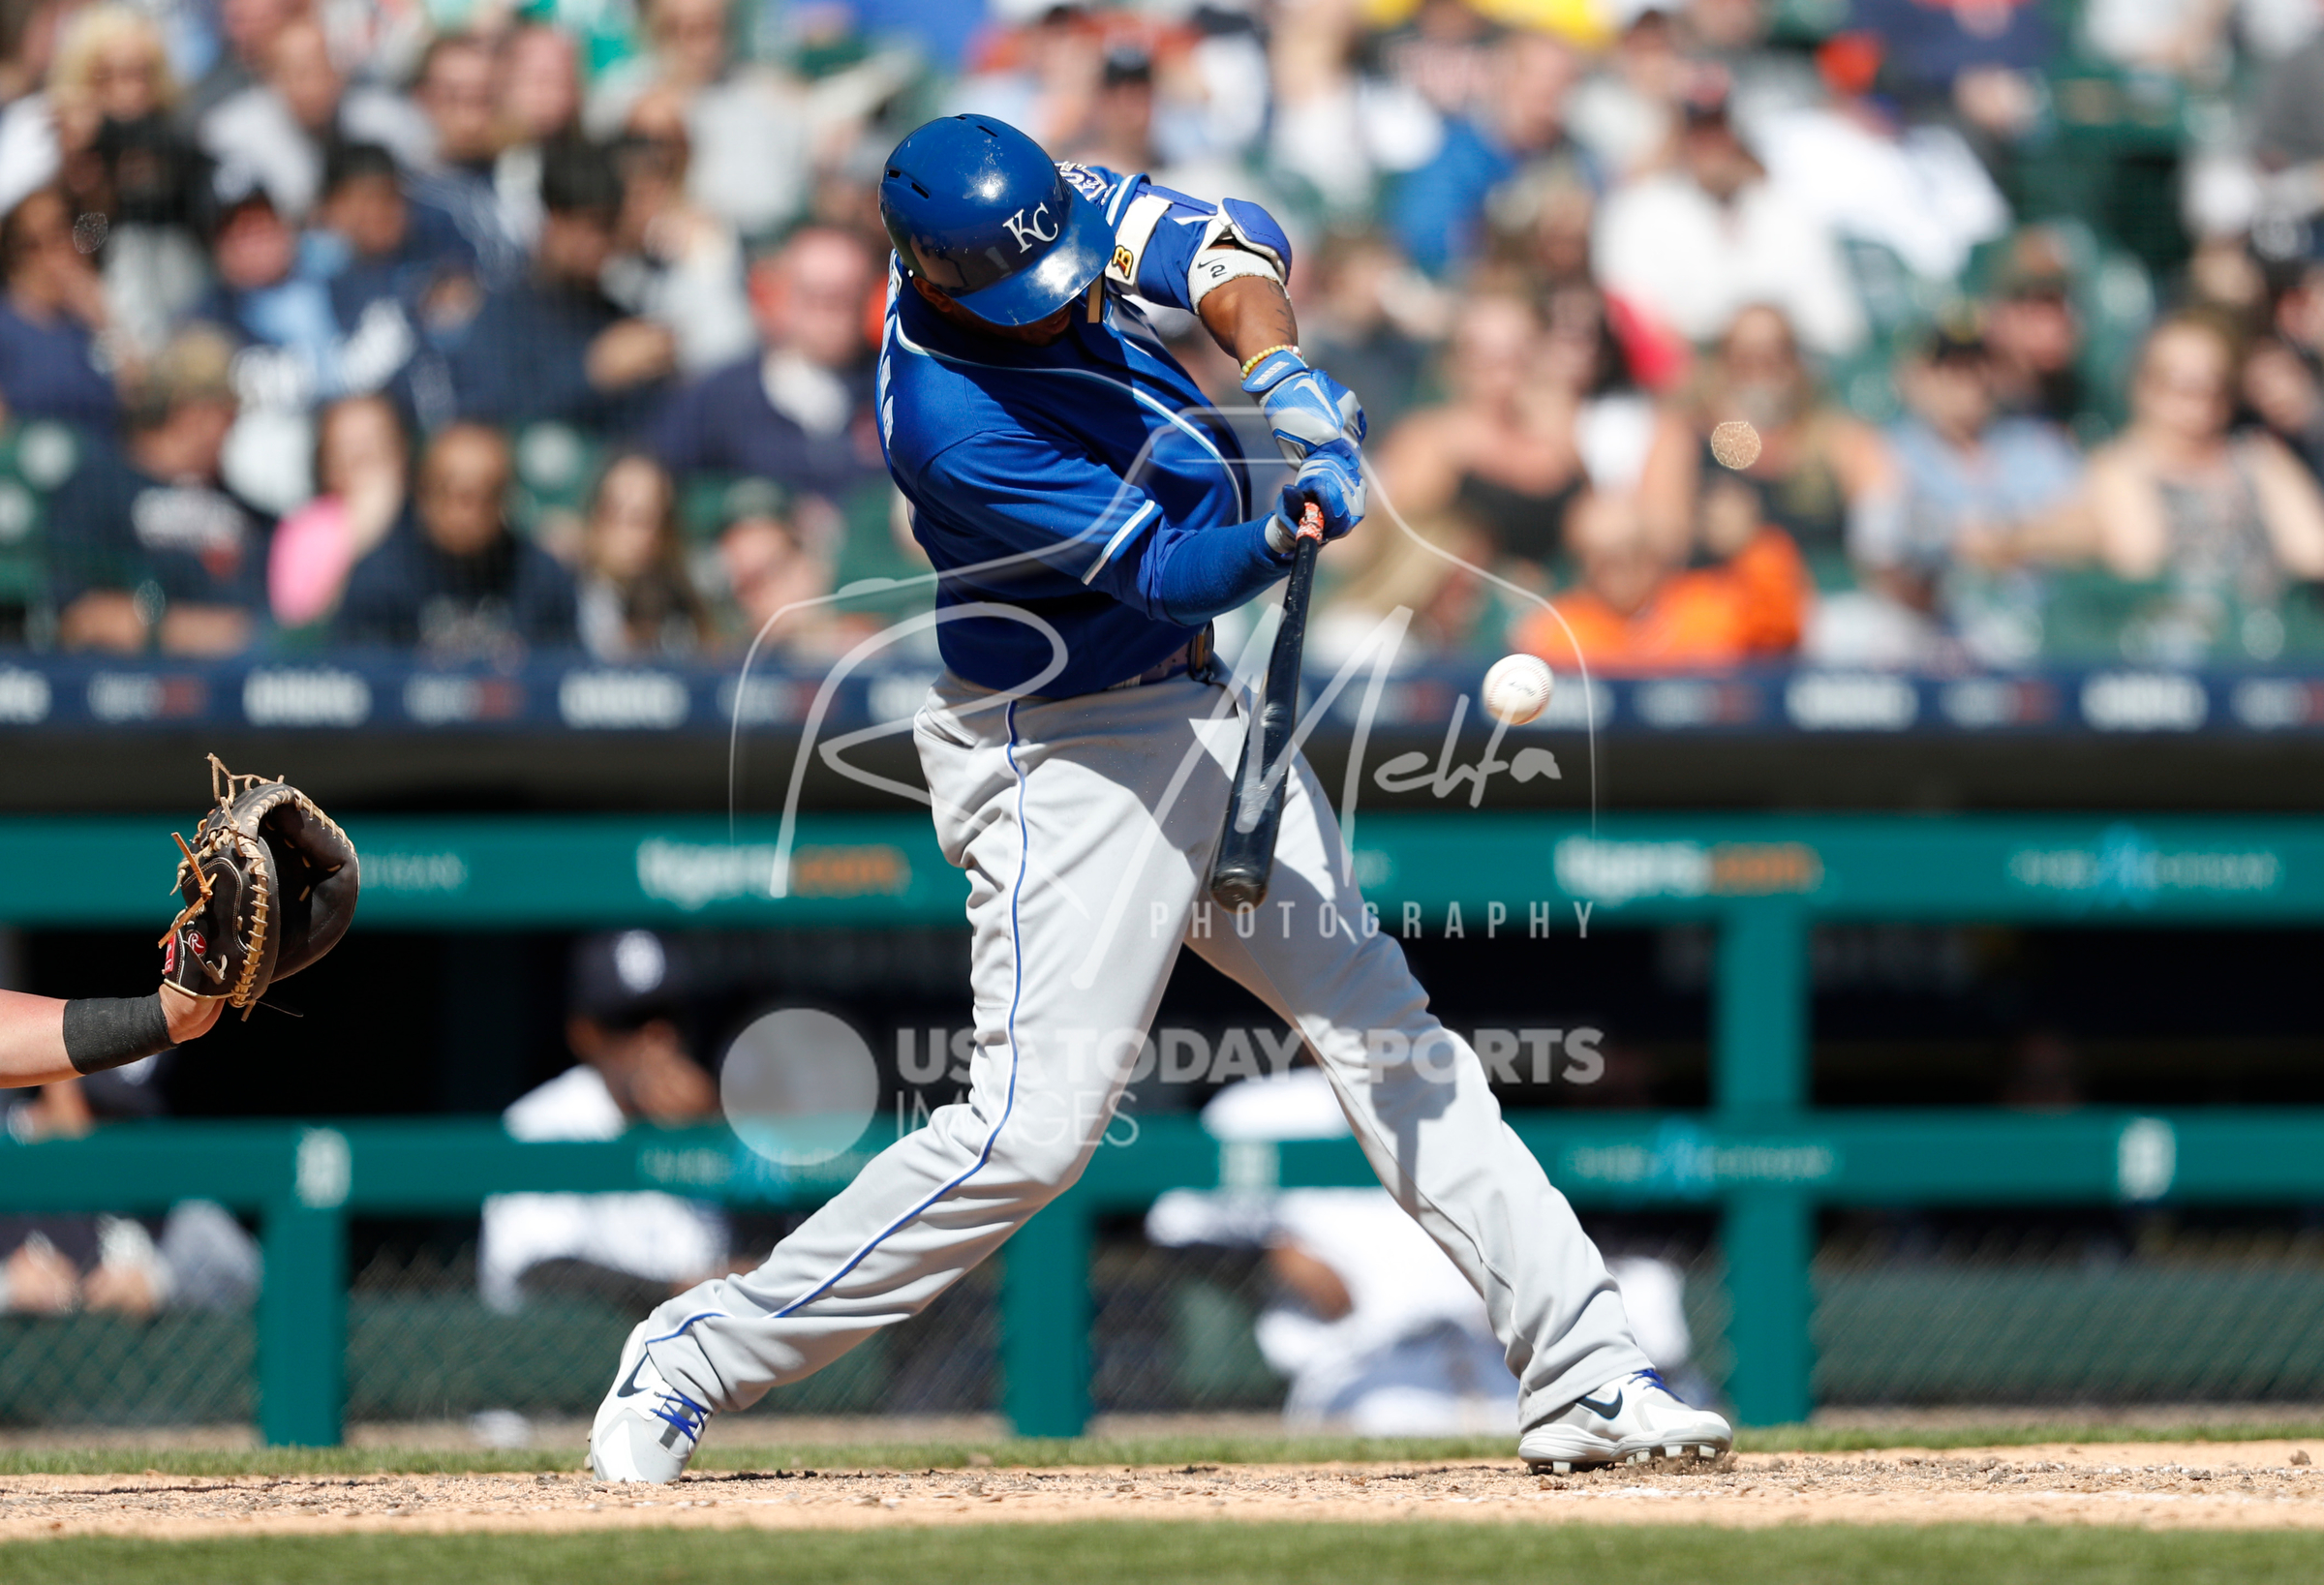 Apr 22, 2018; Detroit, MI, USA; Kansas City Royals shortstop Alcides Escobar (2) gets a hit for a single during the eighth inning against the Detroit Tigers at Comerica Park. Mandatory Credit: Raj Mehta-USA TODAY Sports